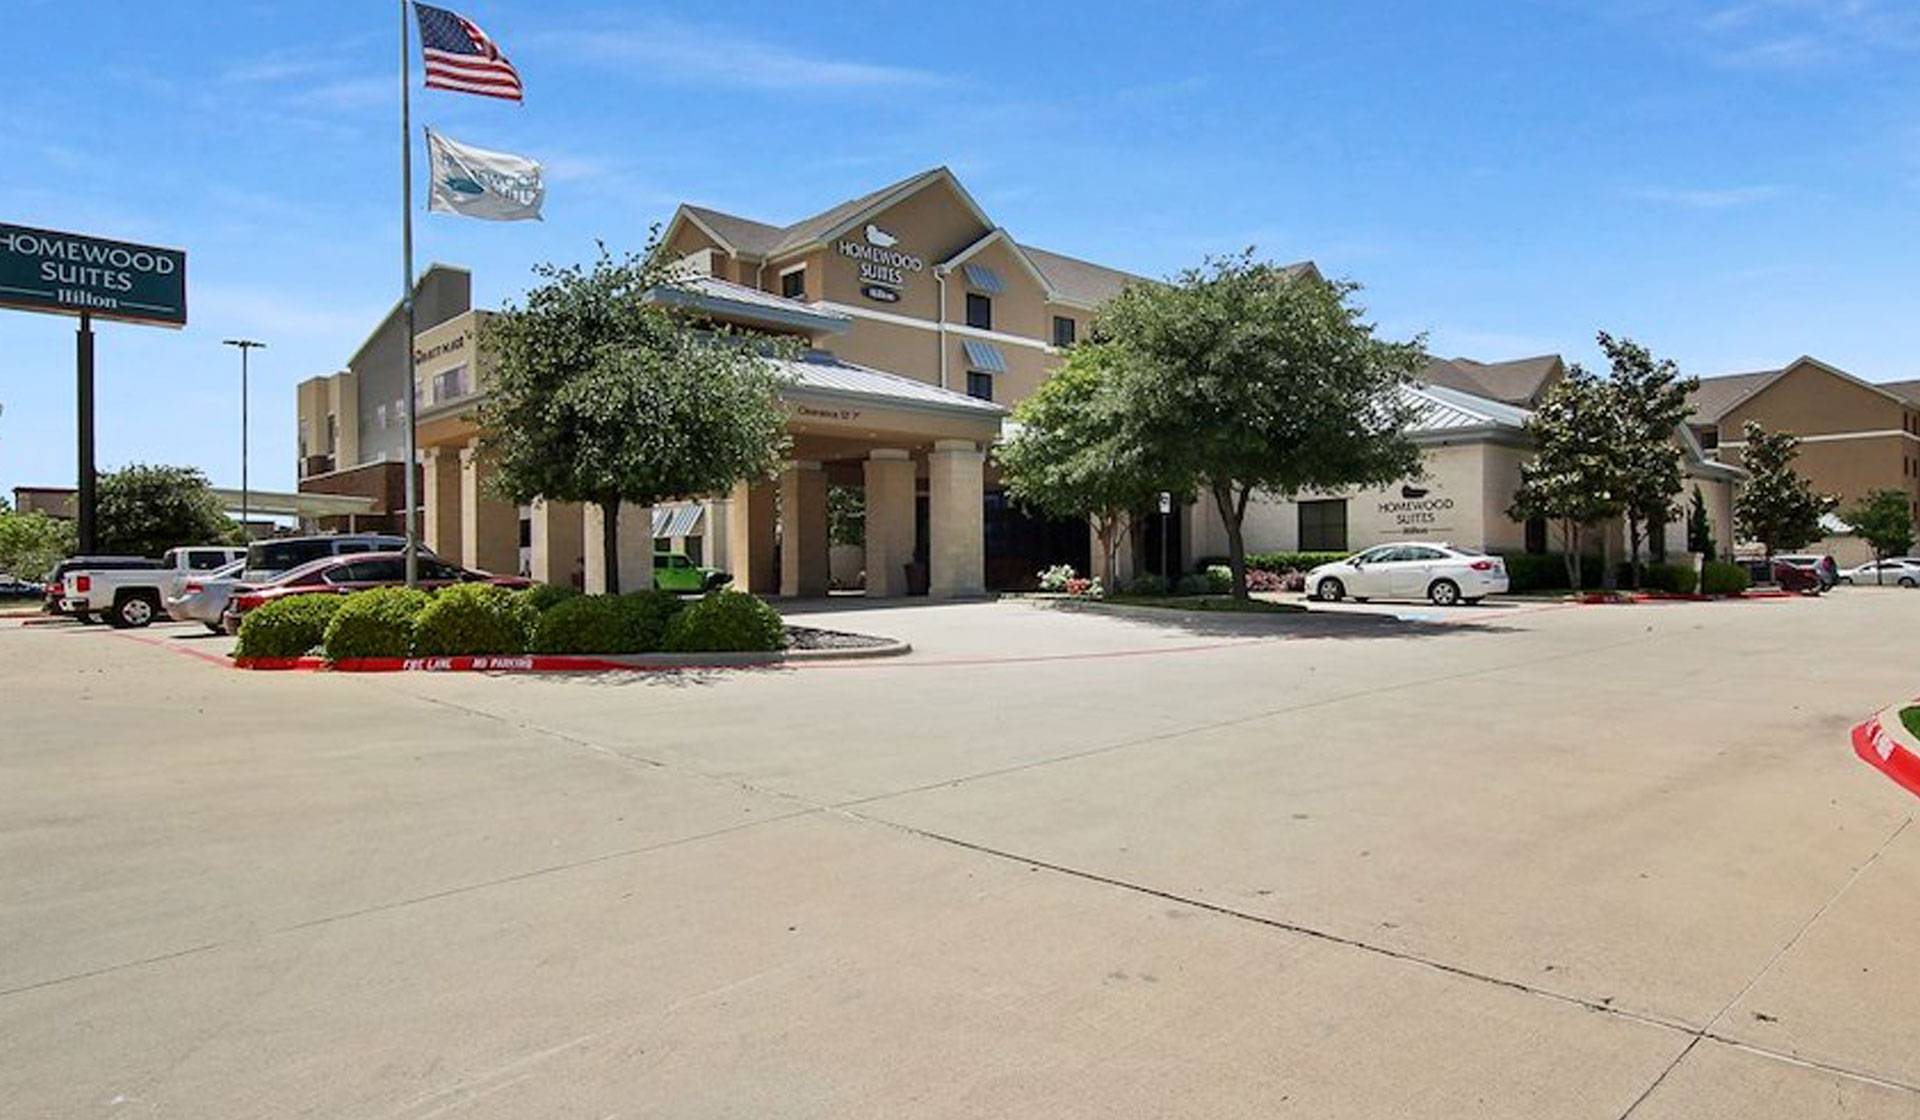 Homewood Suites Dallas